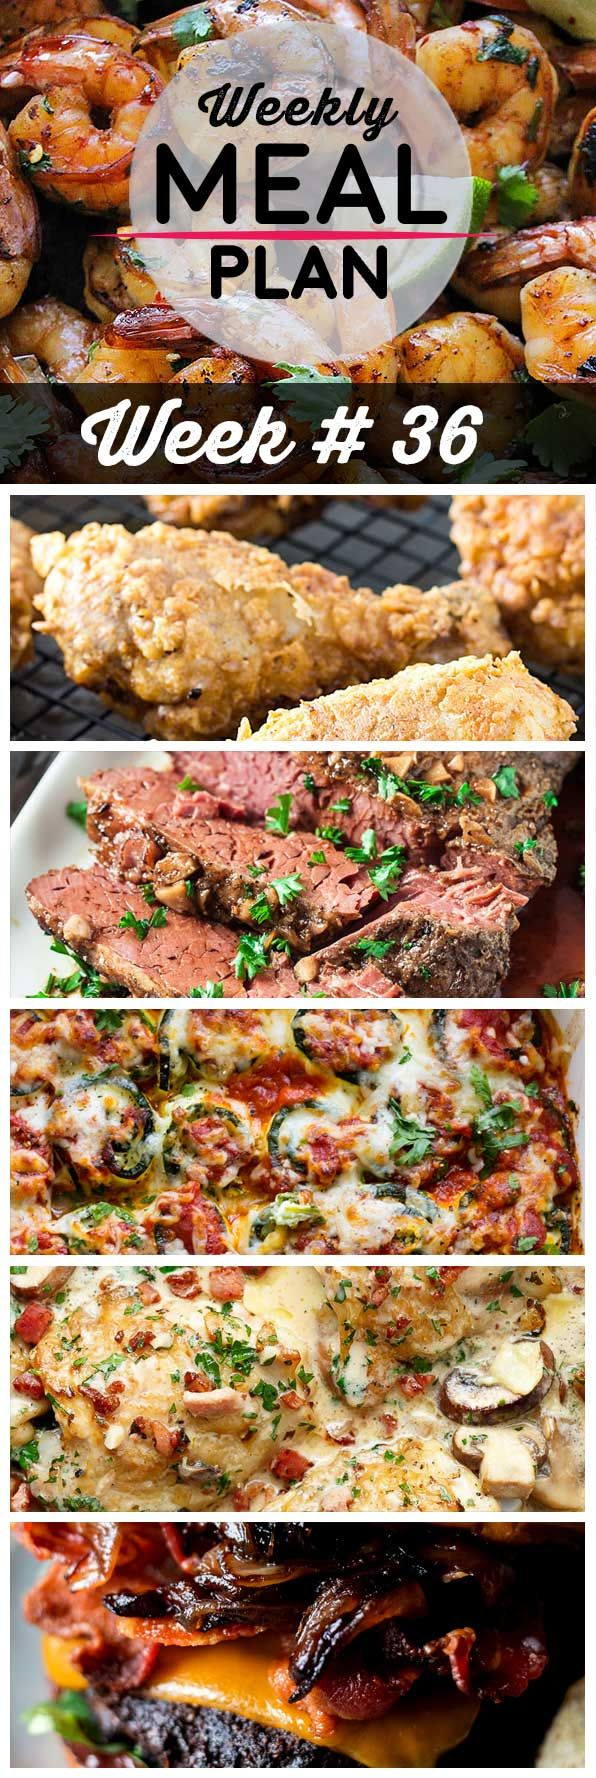 Weekly Meal Plan #36! A meal plan to help you keep things tasty each week, including cilantro lime honey garlic shrimp, southern fried chicken, smoky brisket and more!   HomemadeHooplah.com